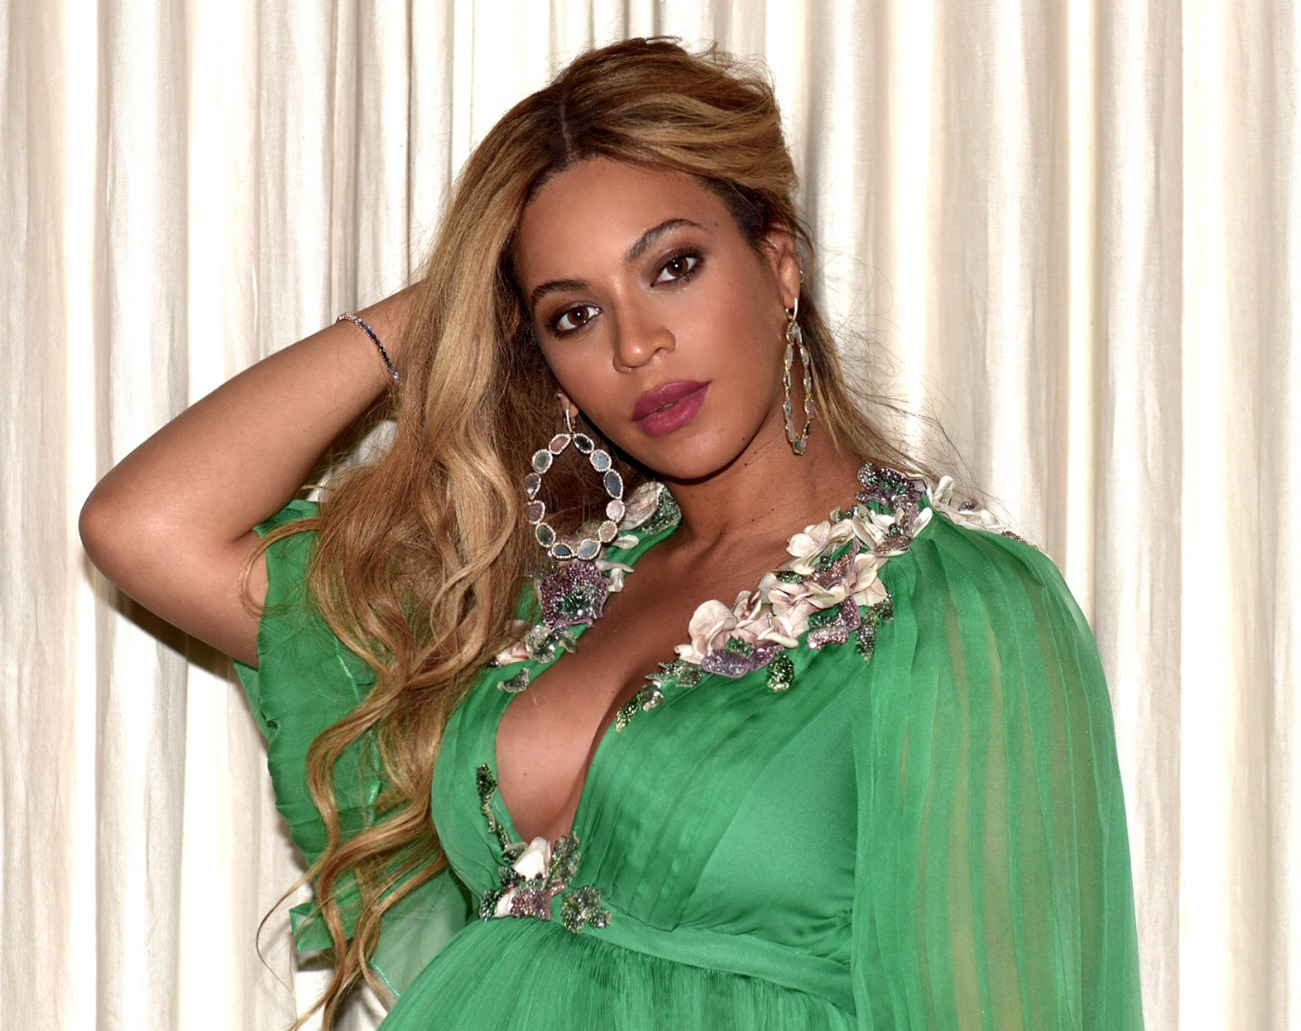 Beyoncé glows radiantly wearing Kimberly McDonald jewelry